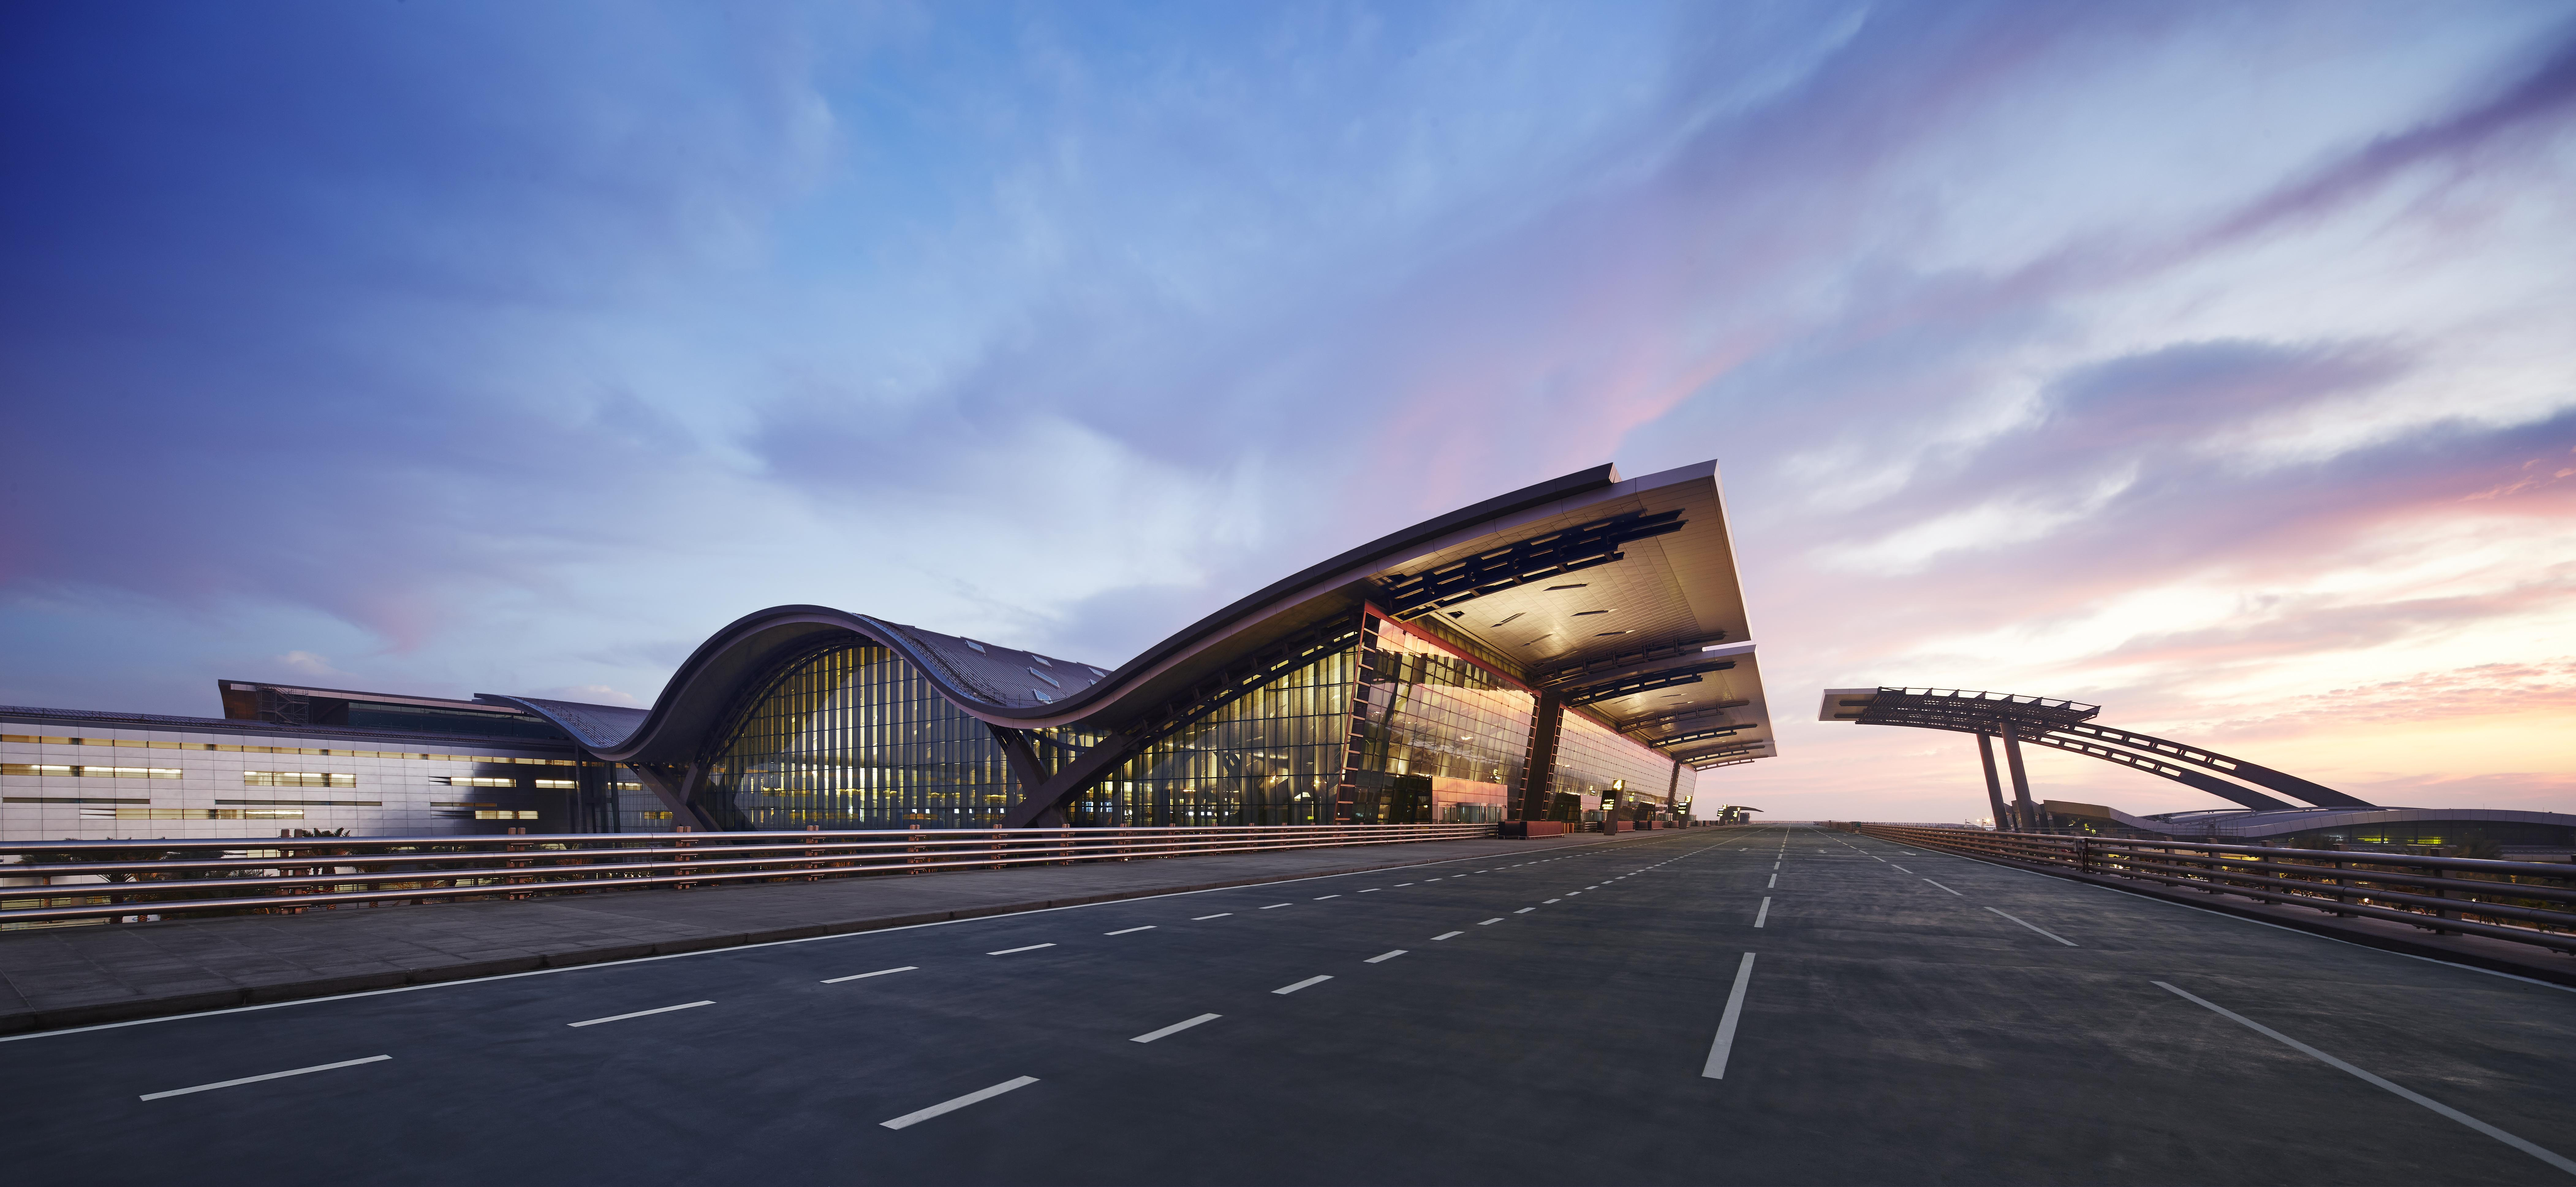 HIA-Doha-Passenger-Terminal-At-Sunset